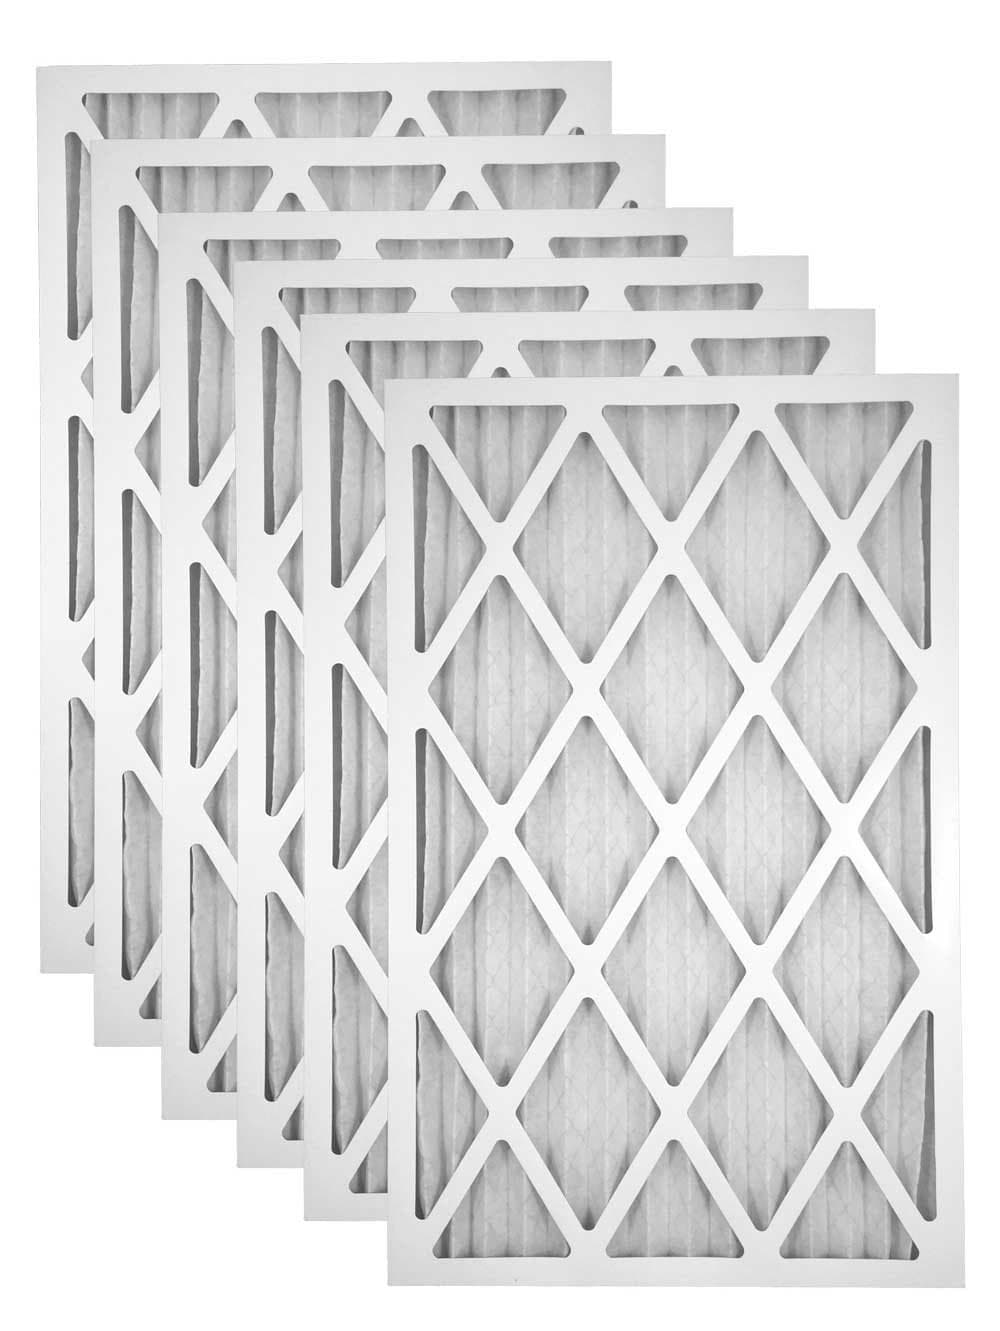 22x22x1 Merv 8 Pleated AC Furnace Filter - Case of 6 by Atomic Filters